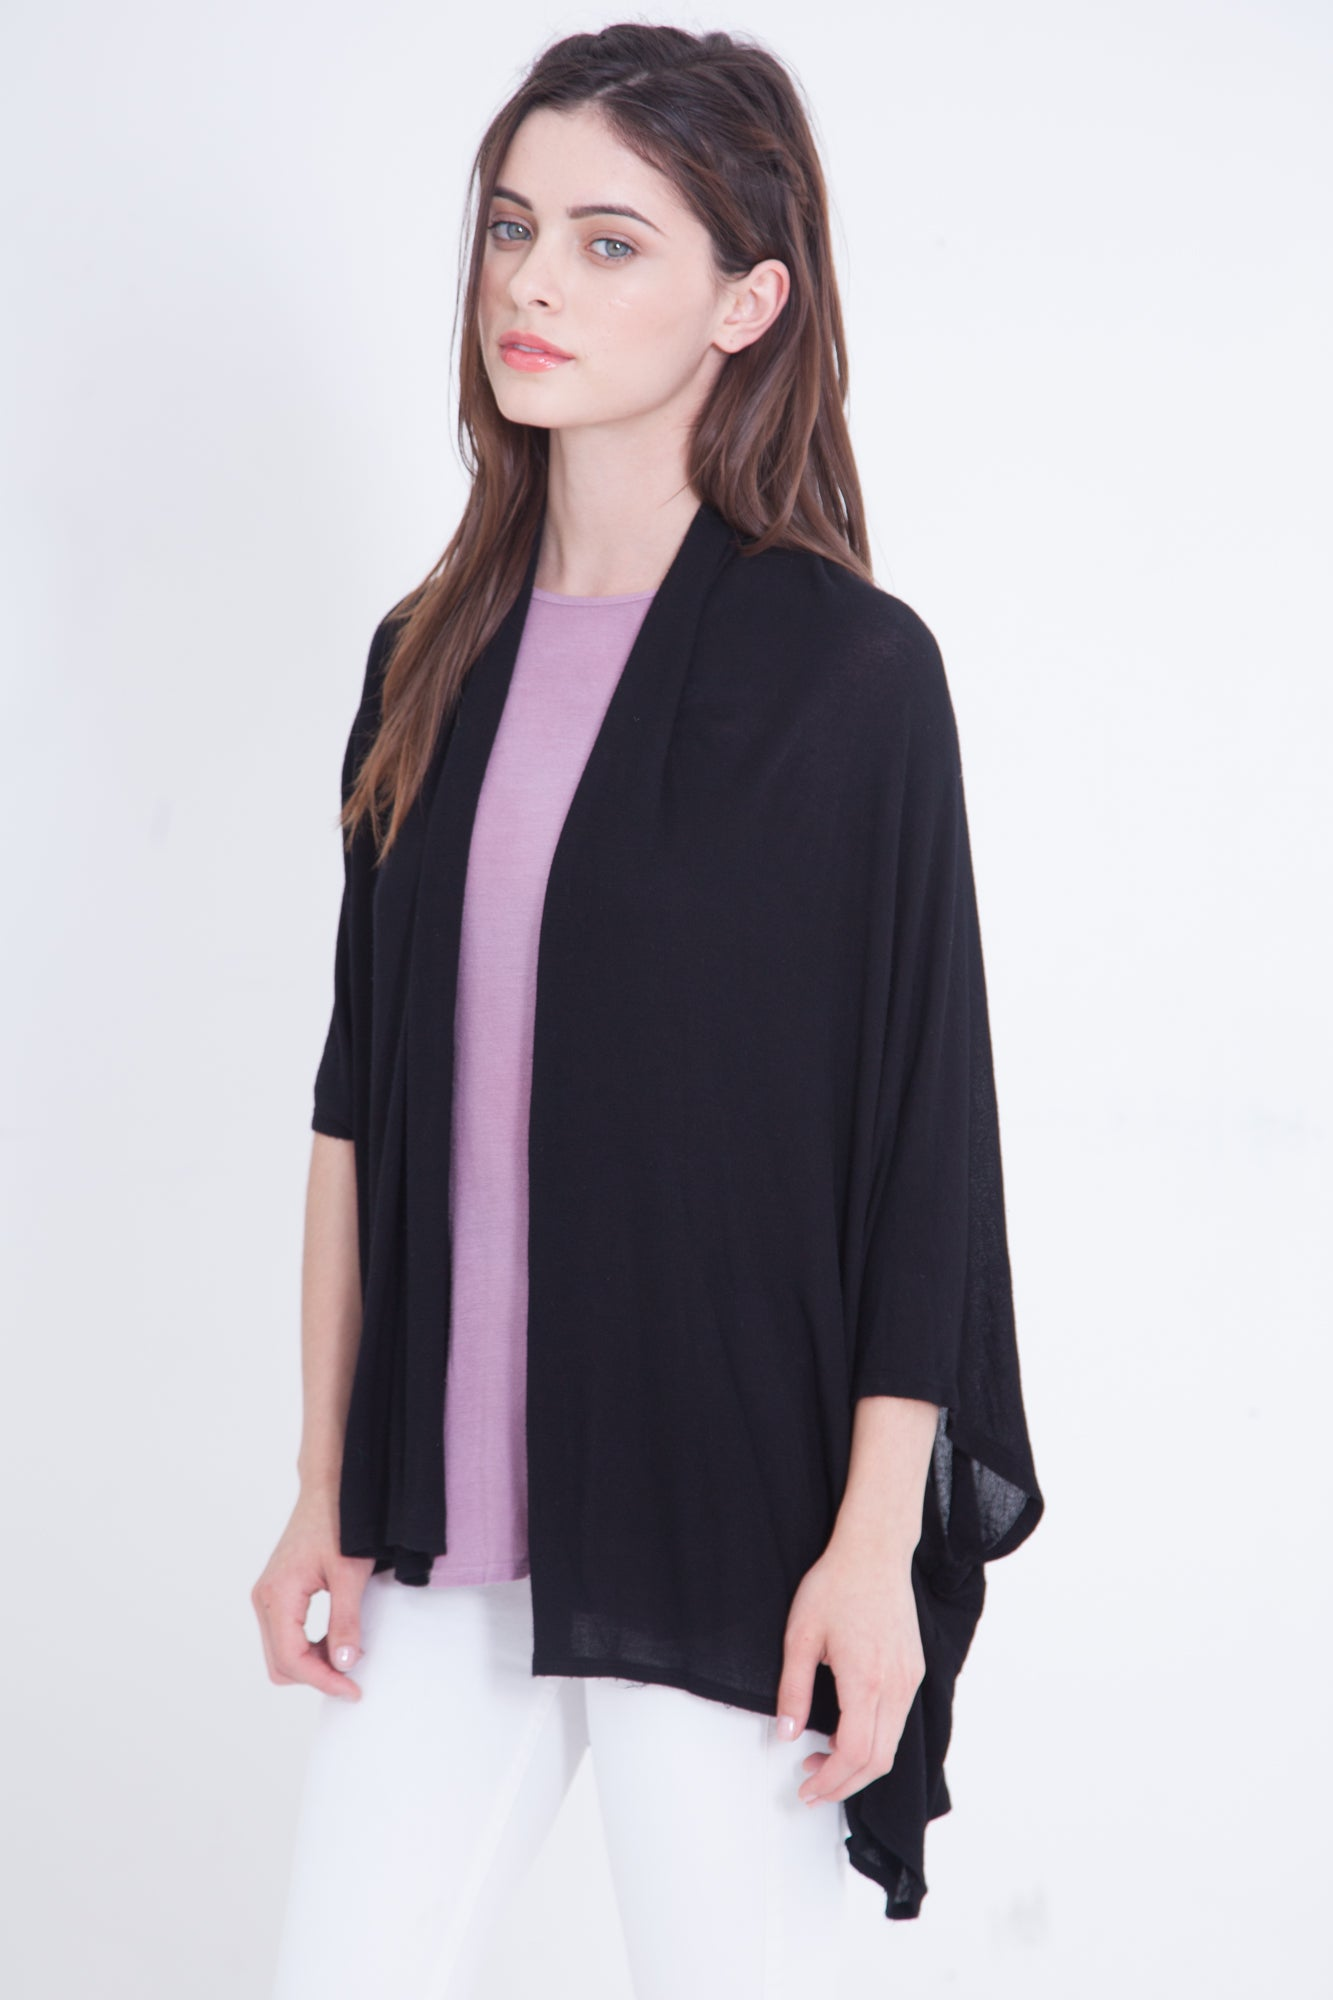 Loose Fit Cardigan Luxe Basics - Black